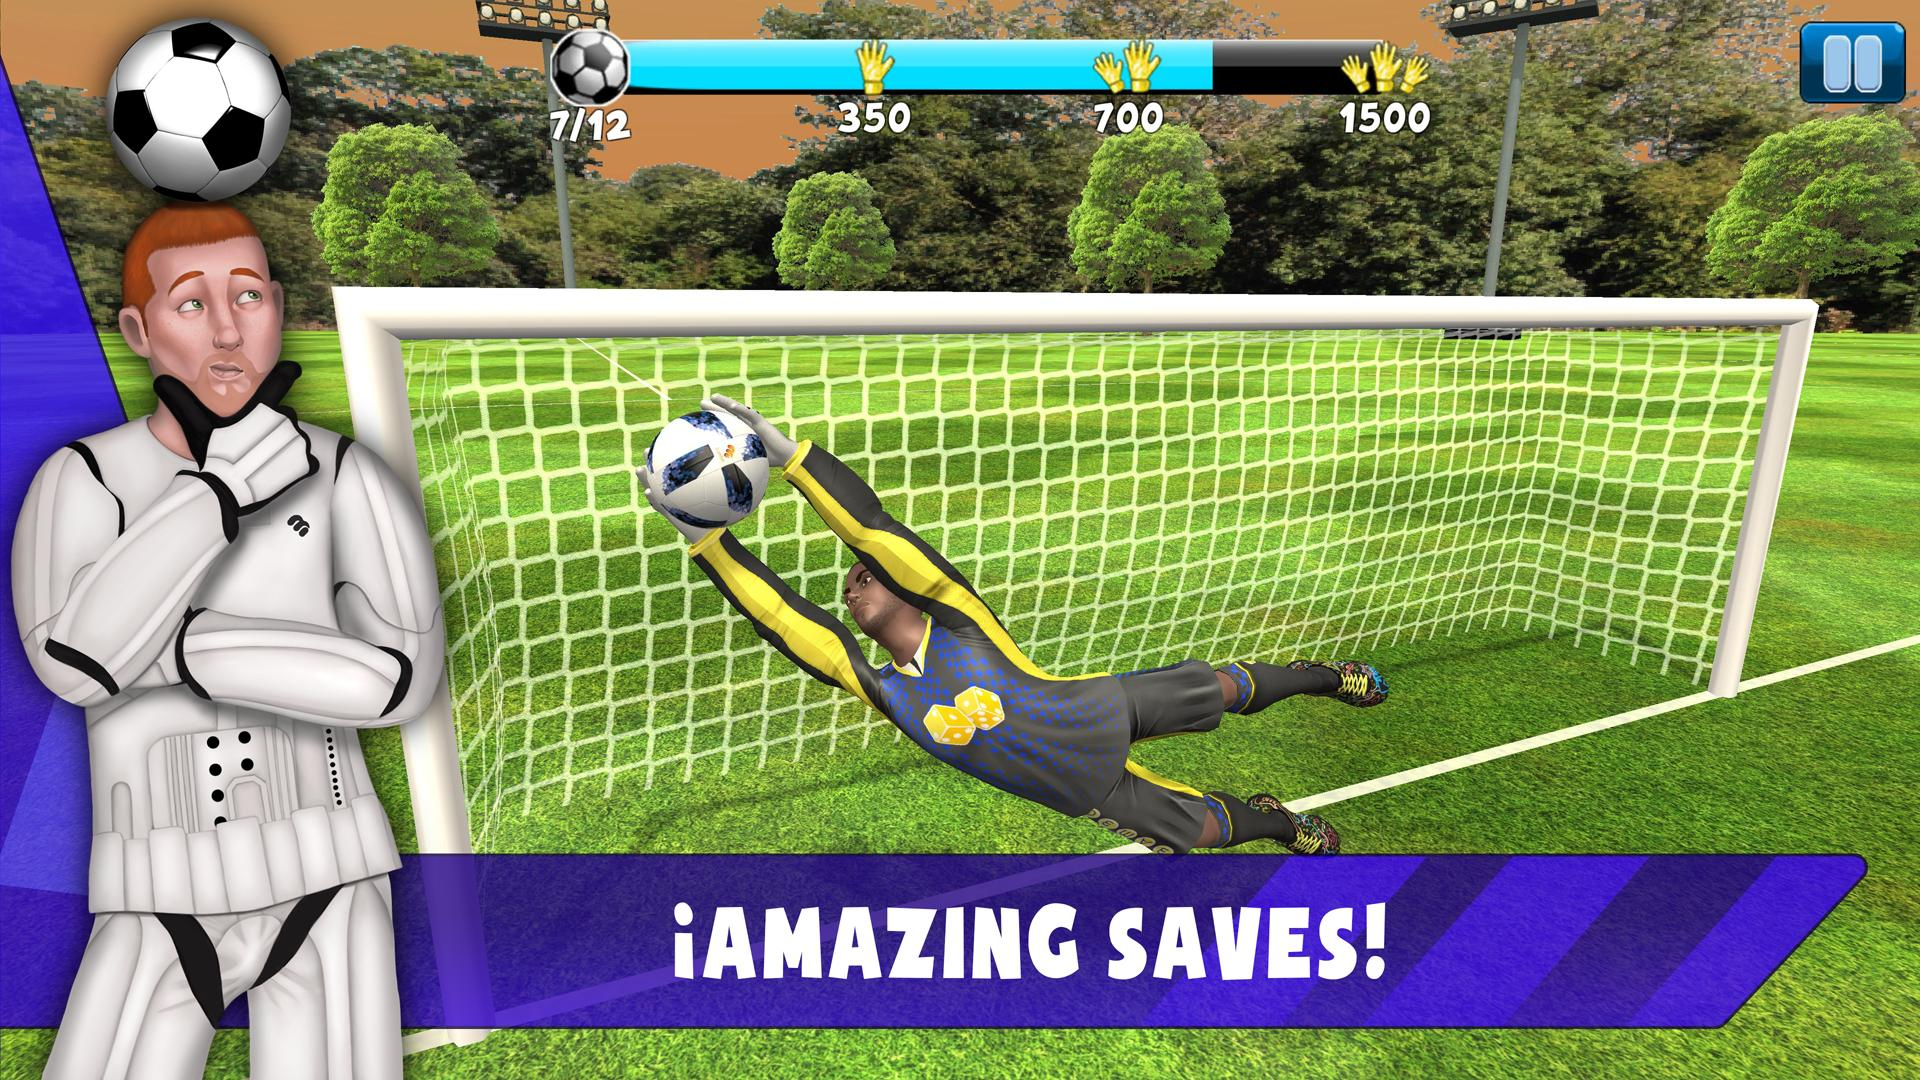 Save! Hero - Gardien De But Jeu Foot 2019 Pour Android serapportantà Jeux De Foot Gardien De But